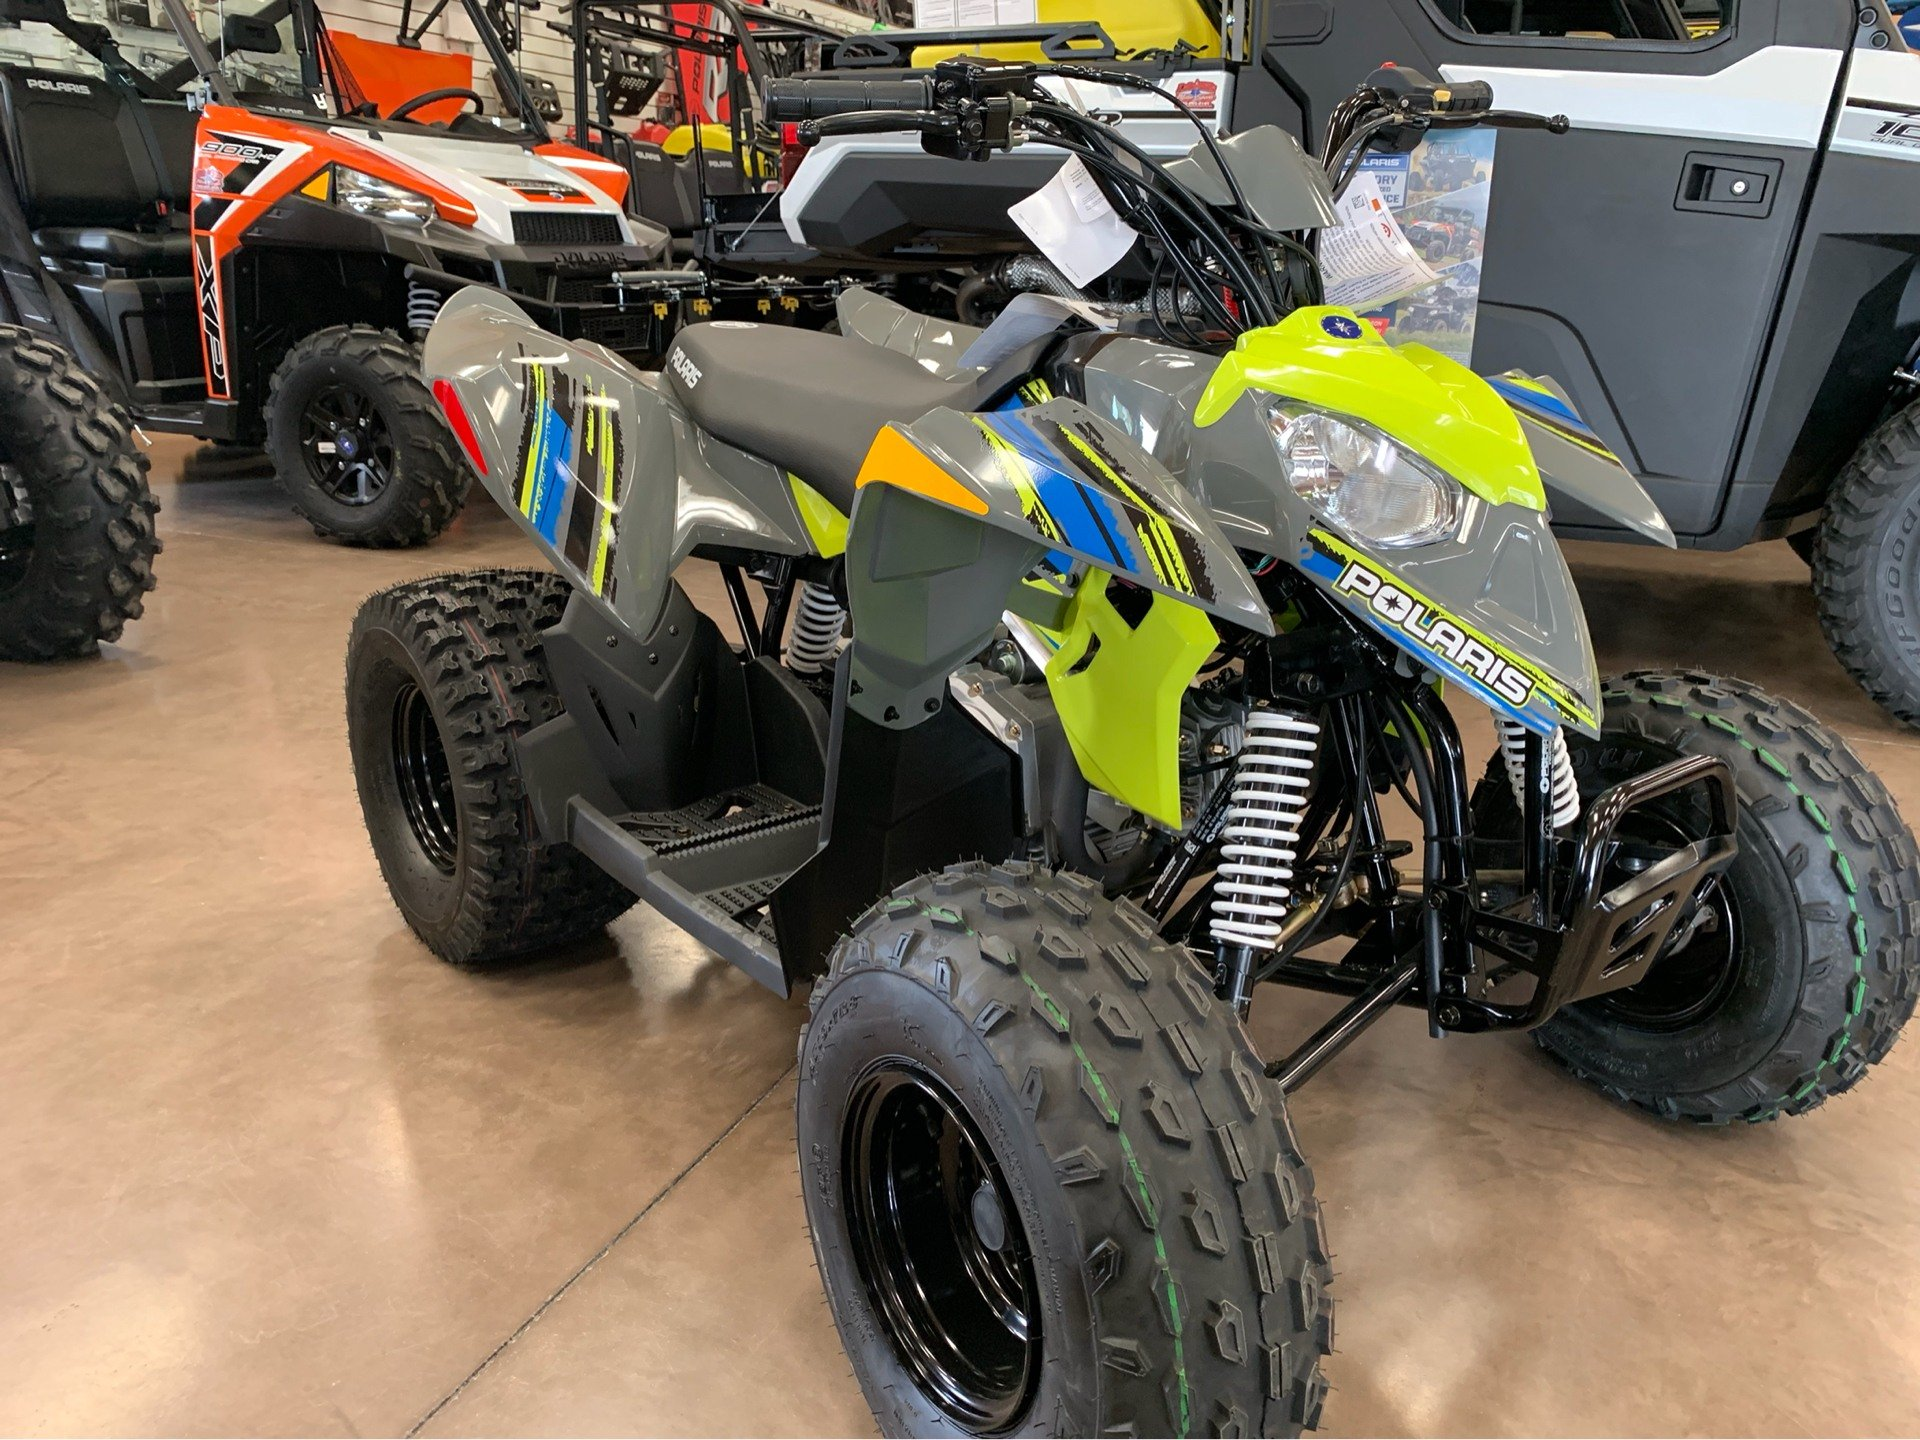 2019 Polaris Outlaw 110 in Algona, Iowa - Photo 2